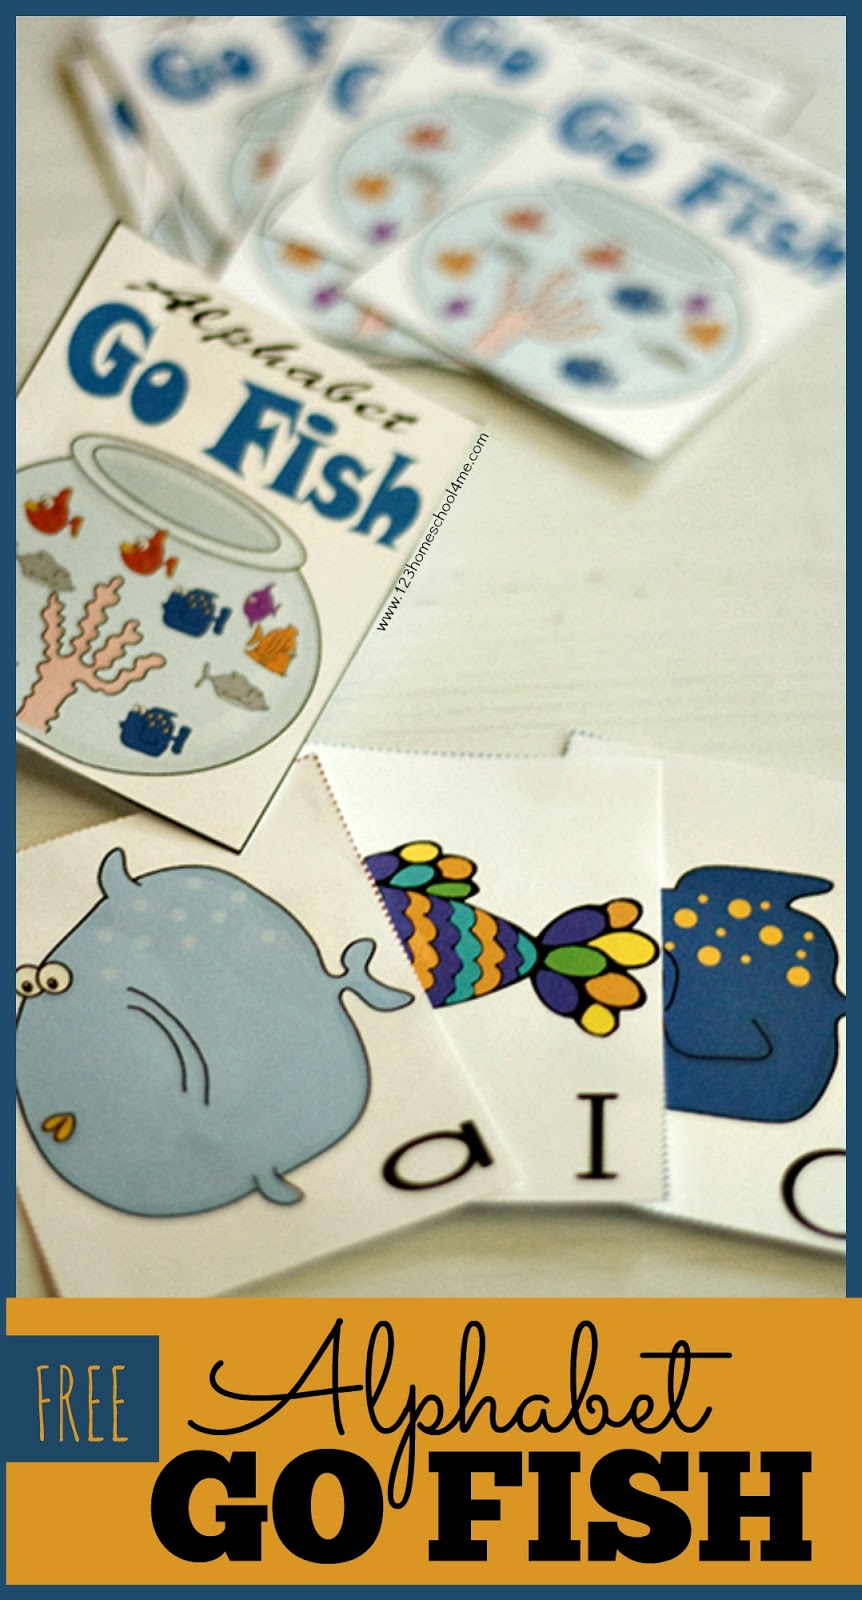 Free online dating go fish